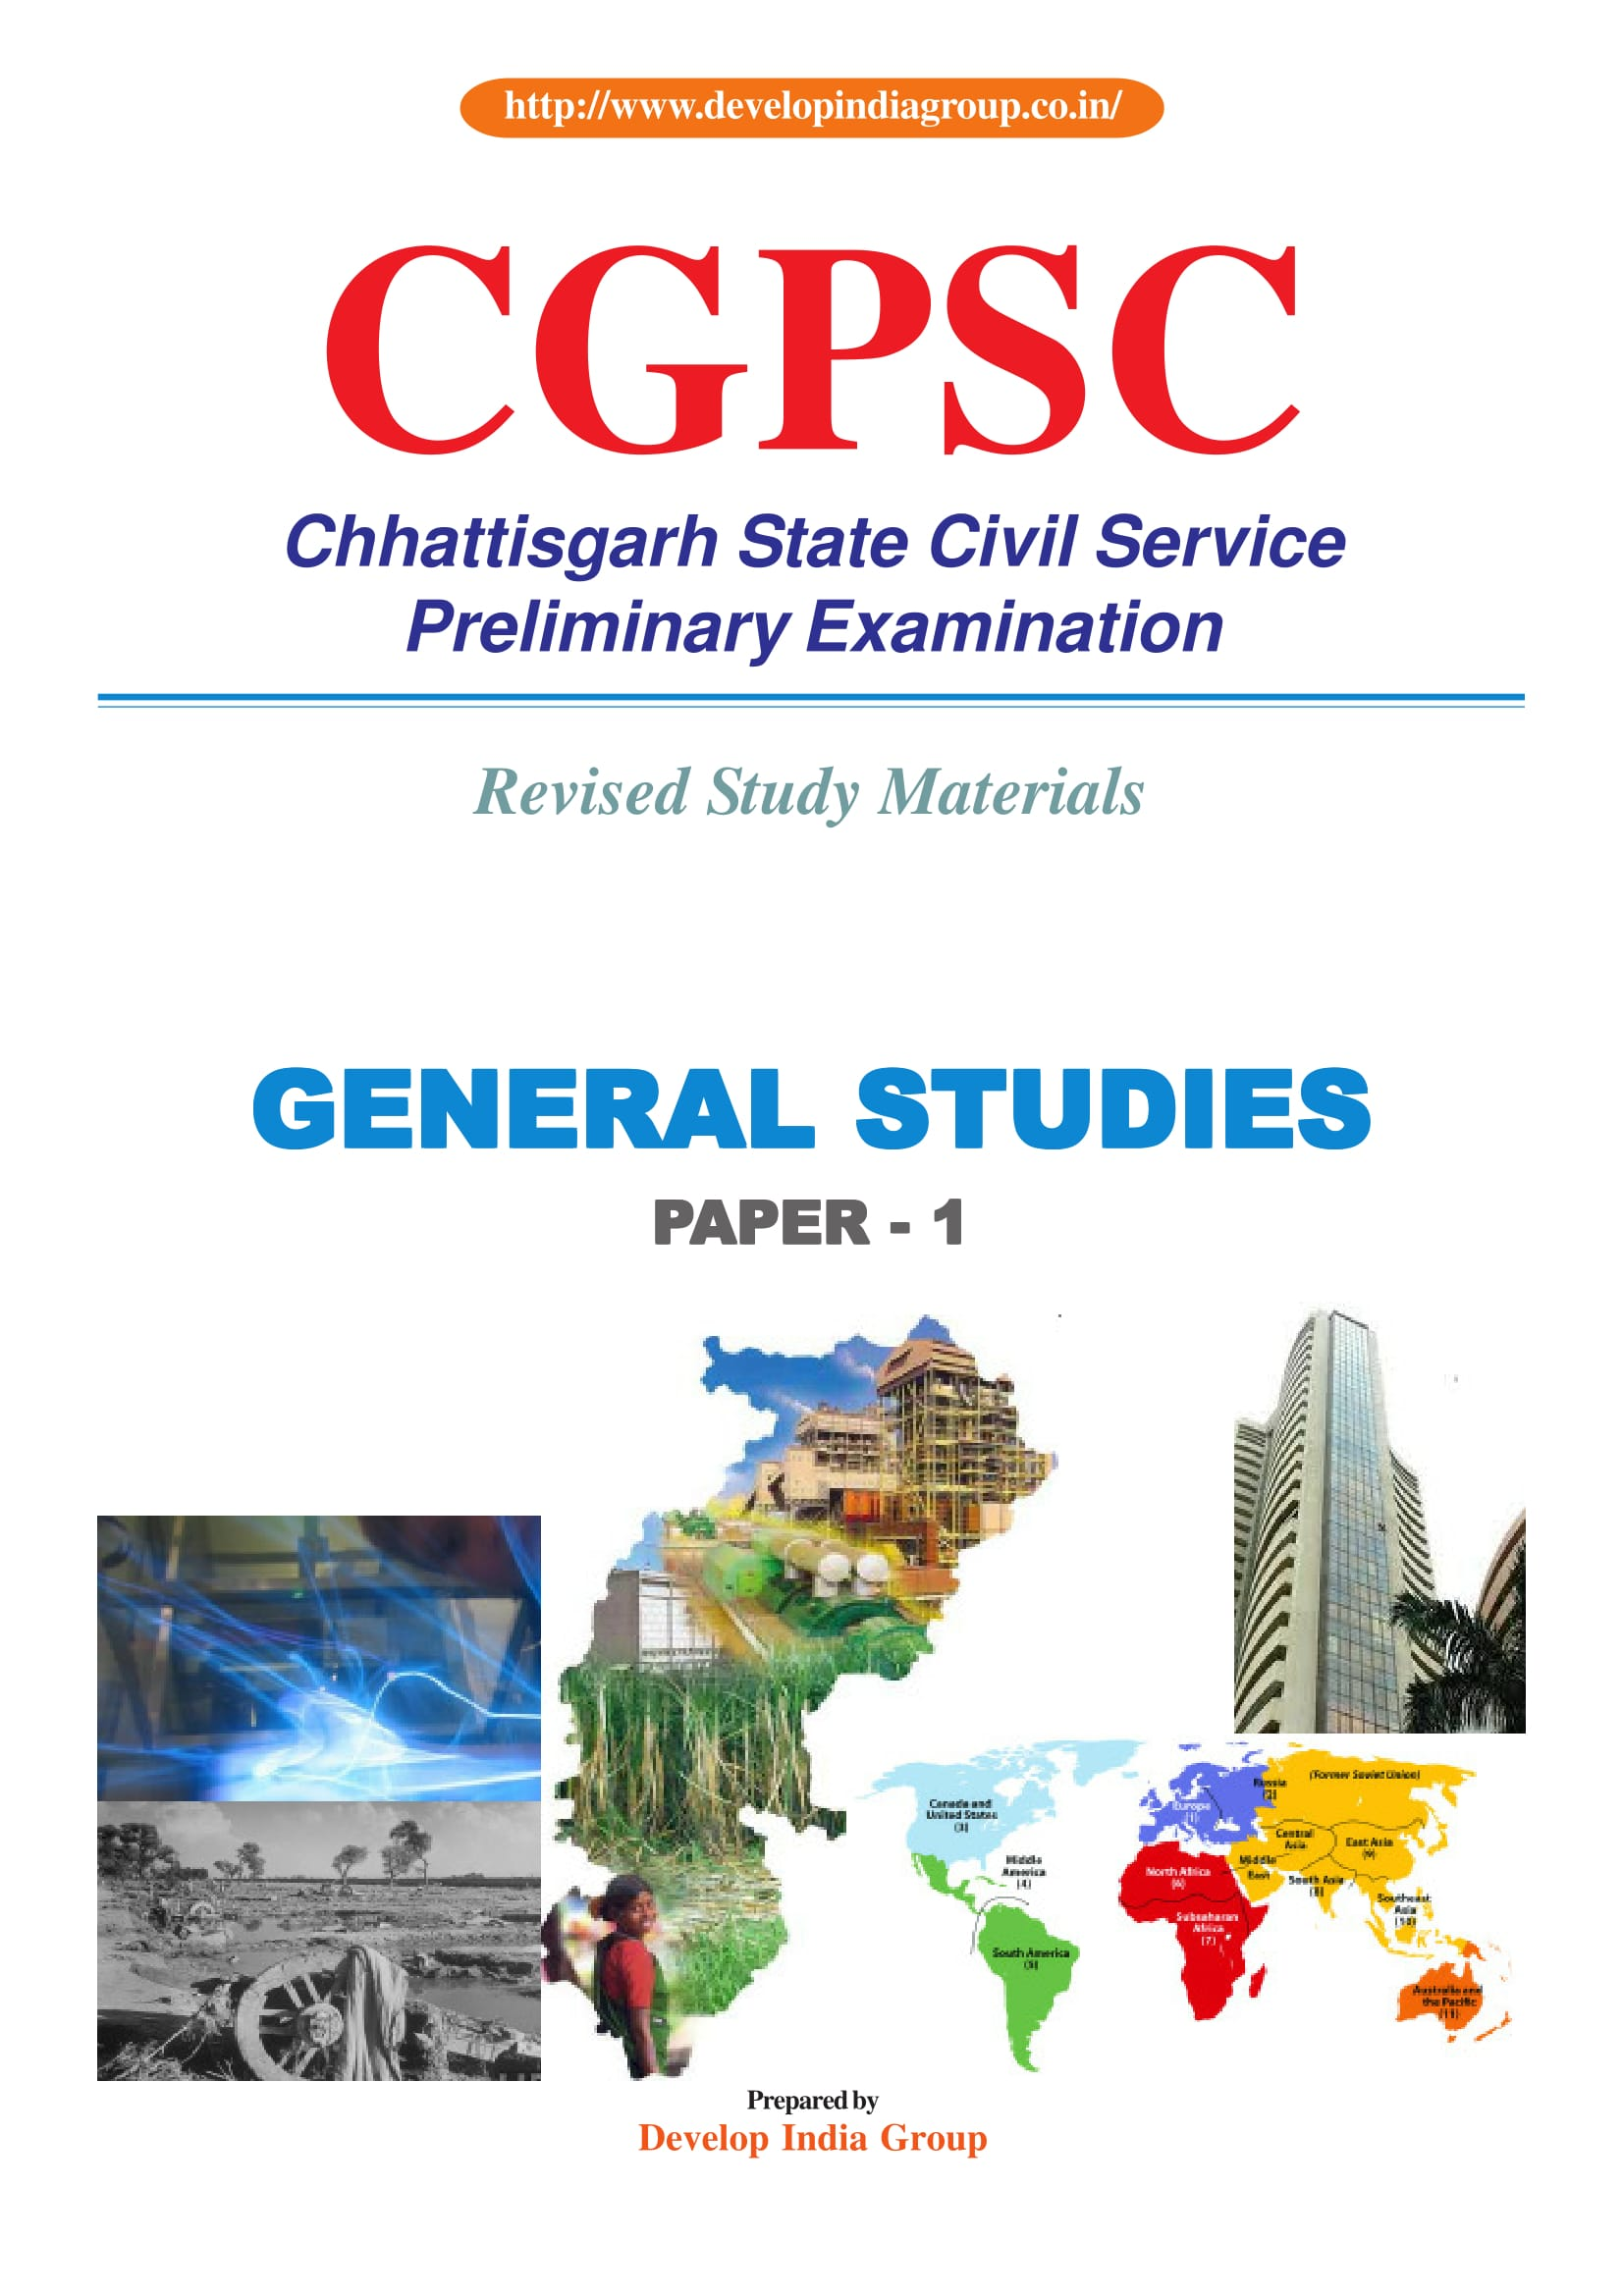 CGPSC_Pre_Paper_1_General_Studies_cover_Eng